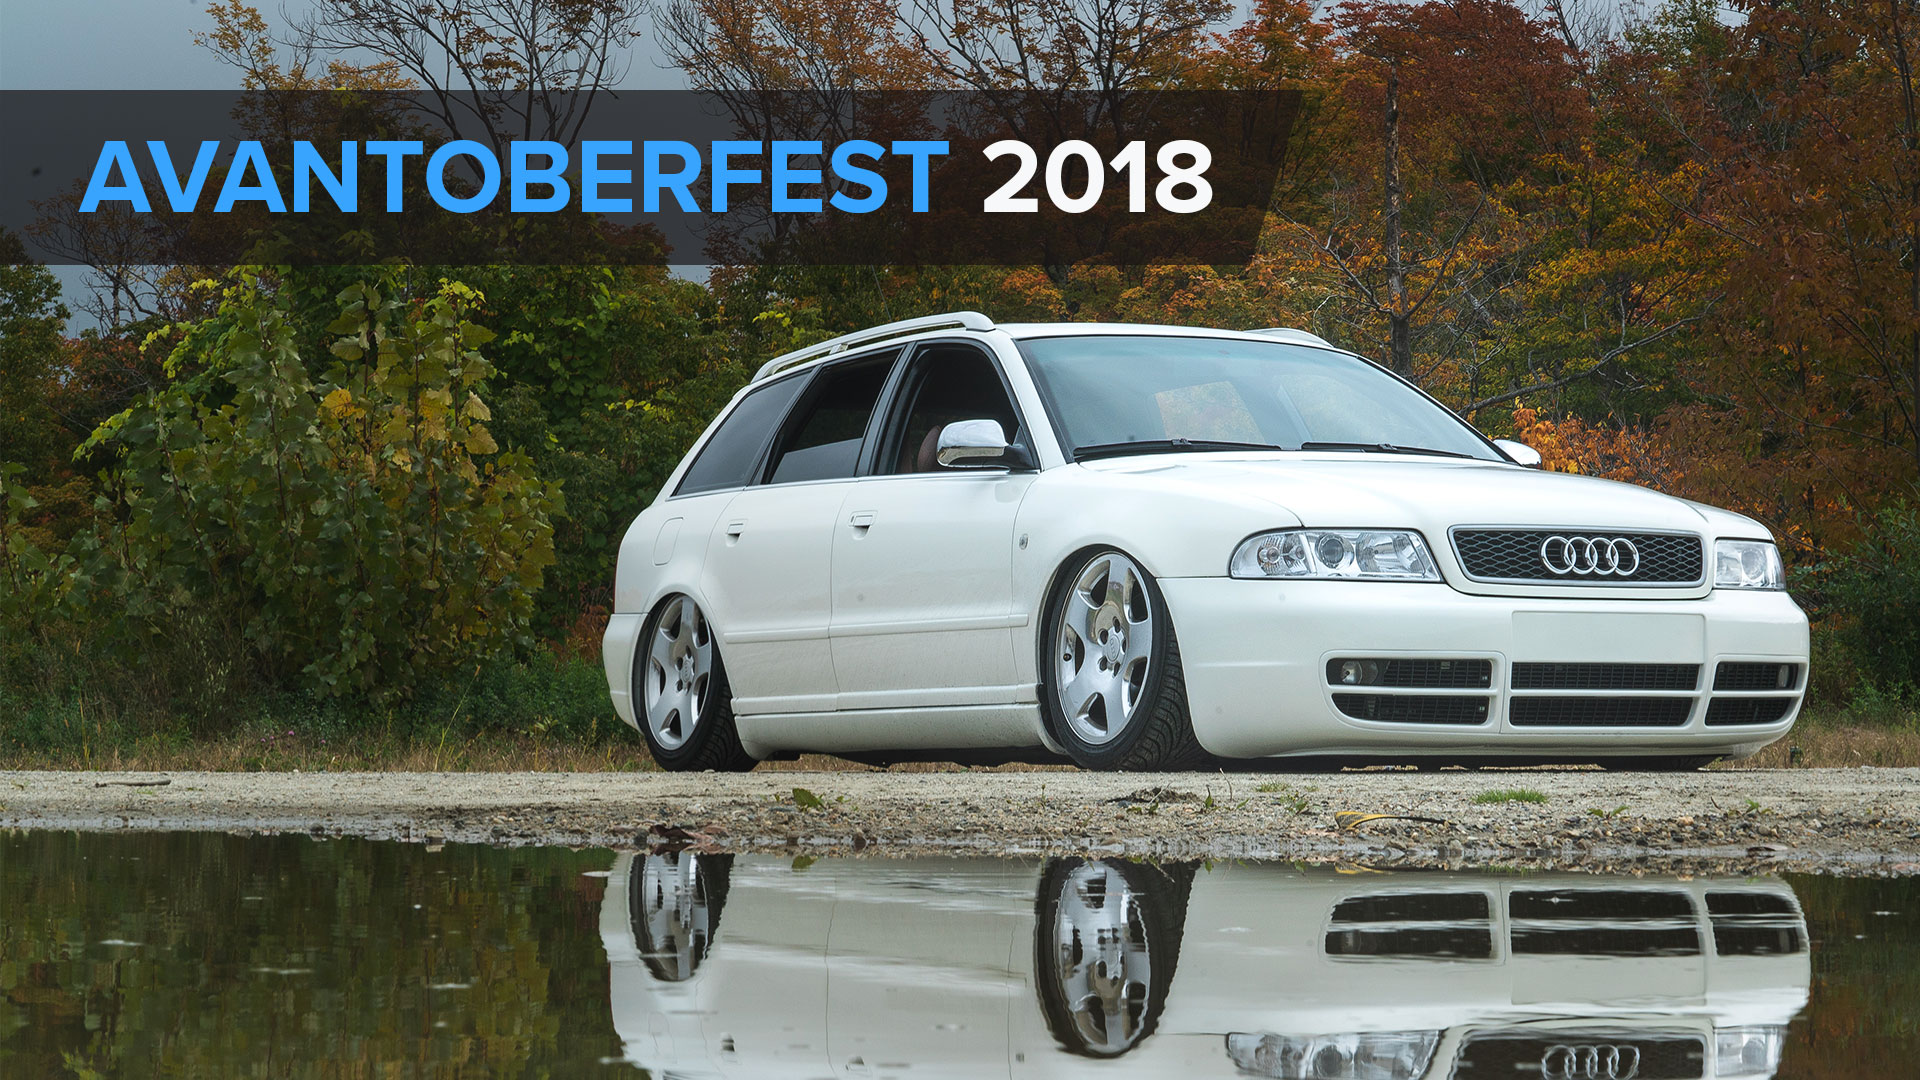 Why Avantoberfest Is One Of The Best Automotive Events Of The Year